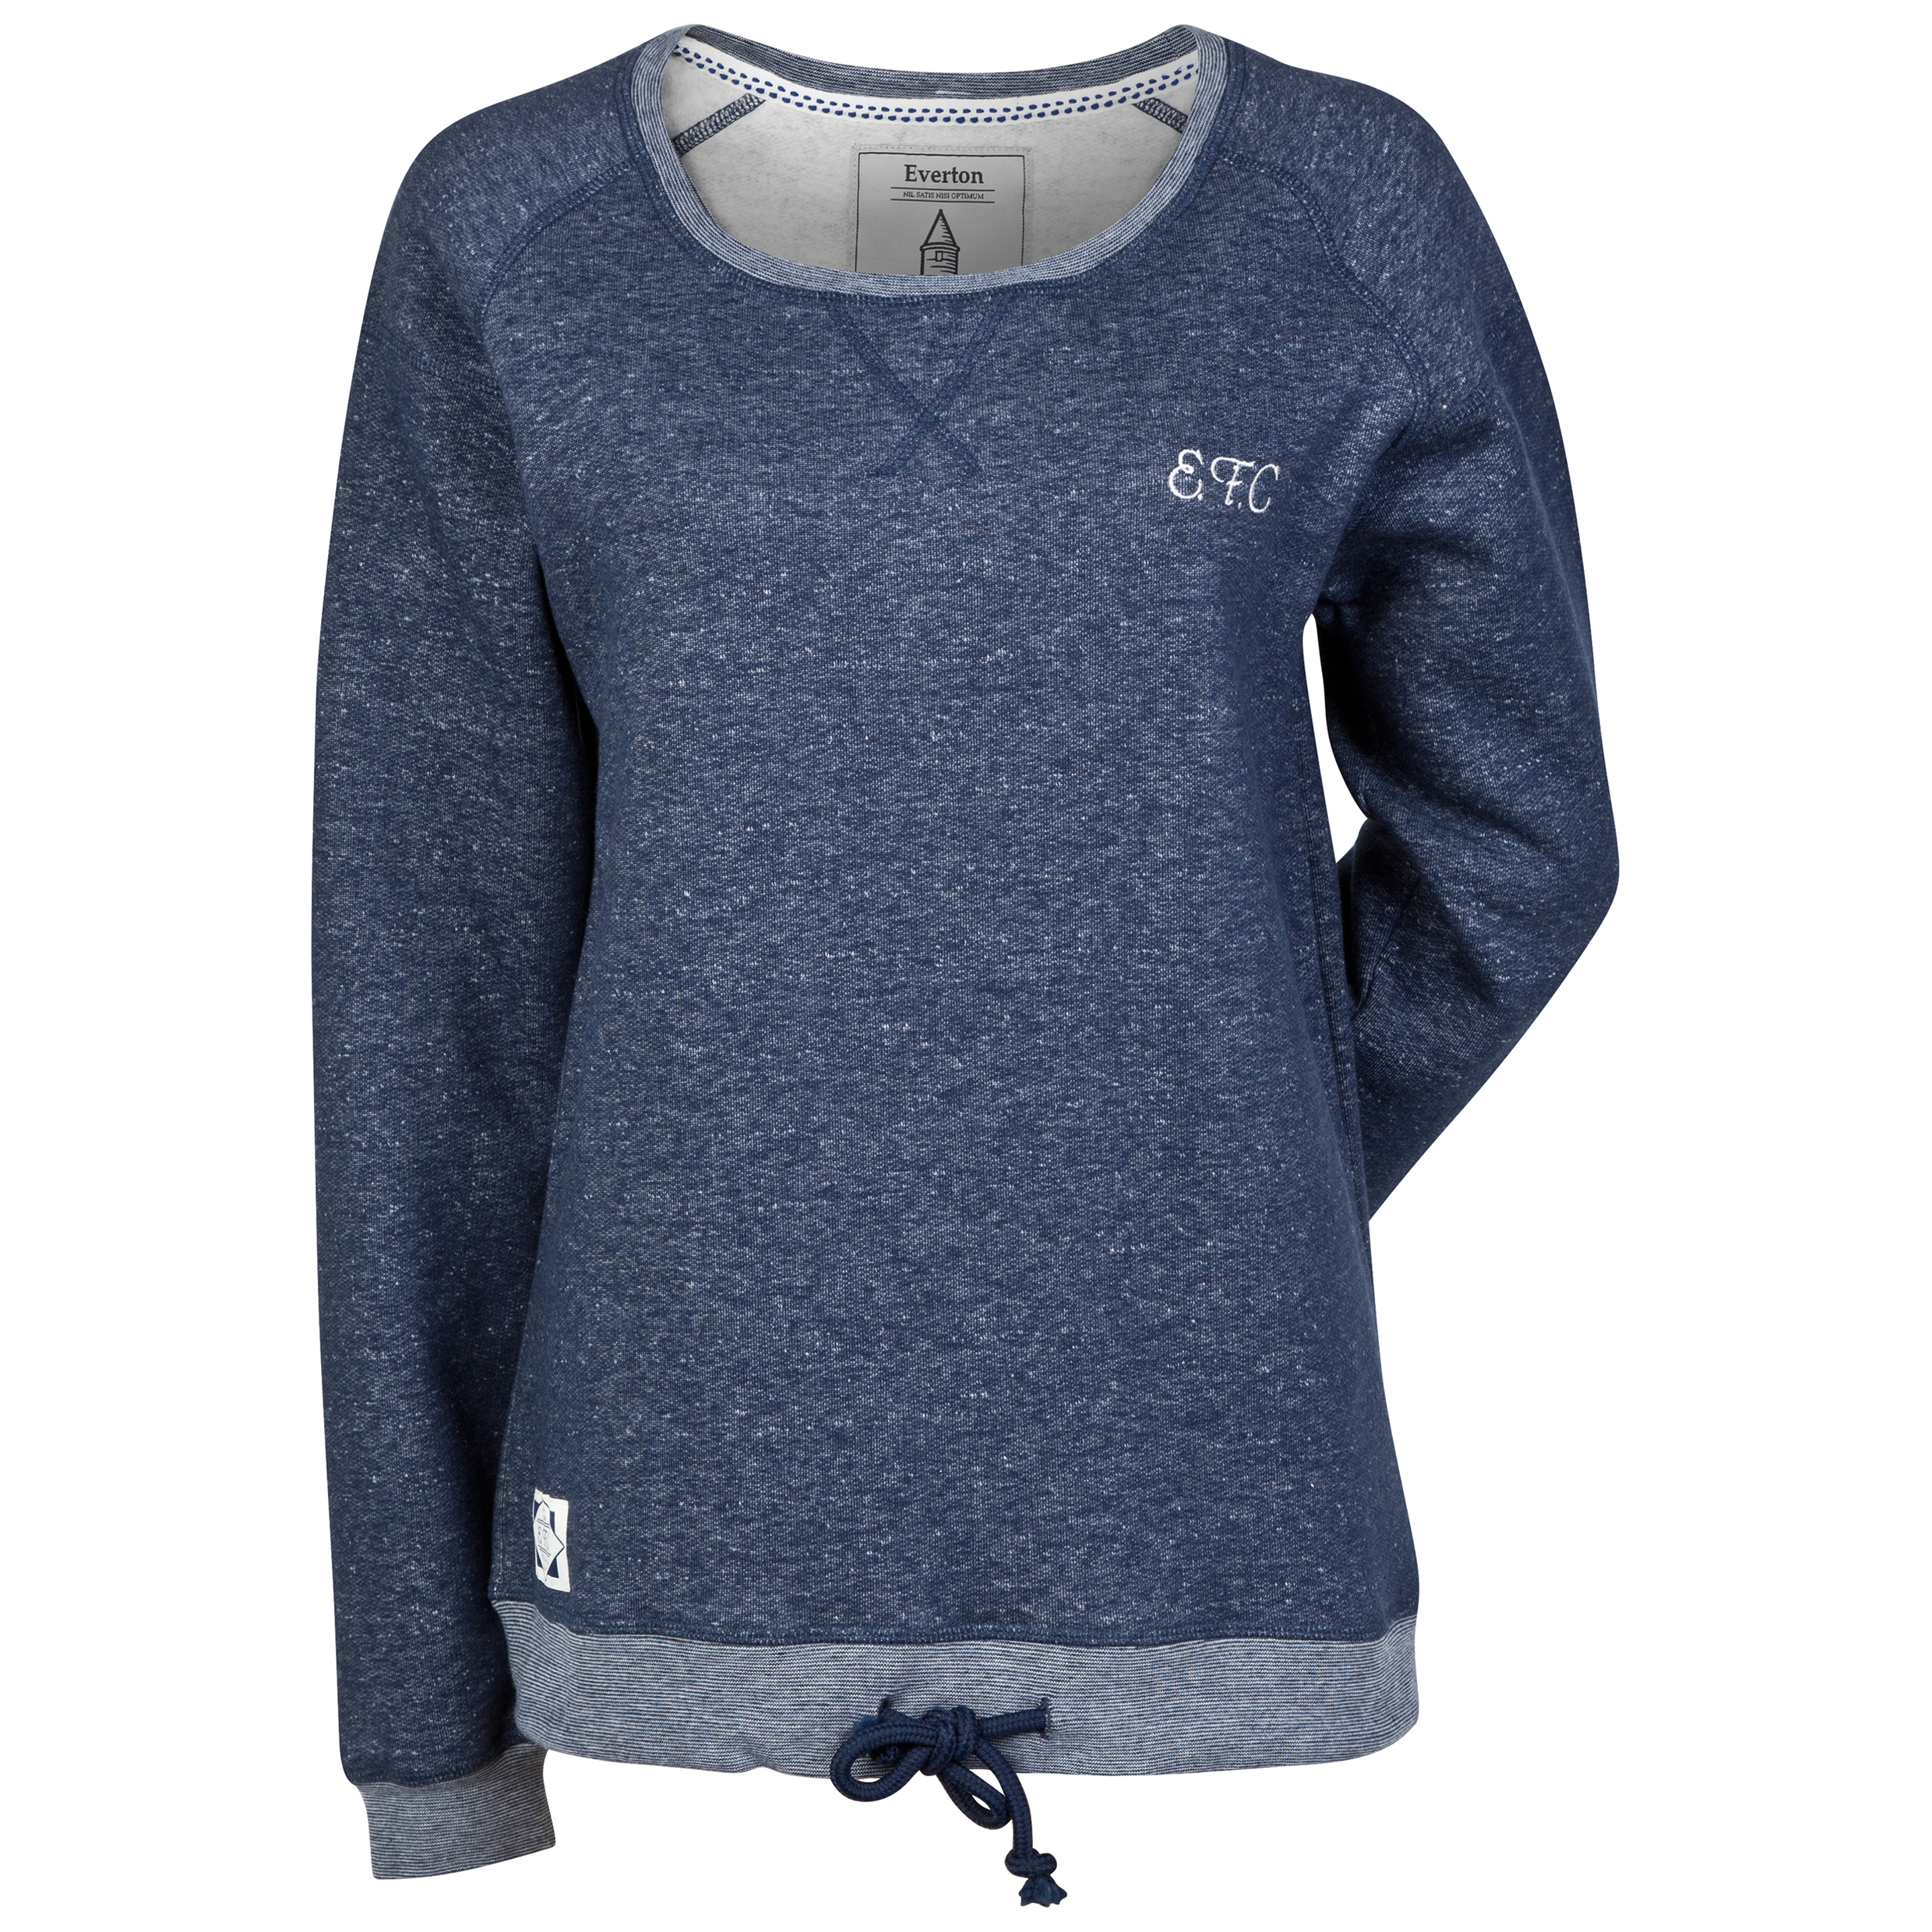 Everton Crew Sweatshirt - Denim Marl - Womens